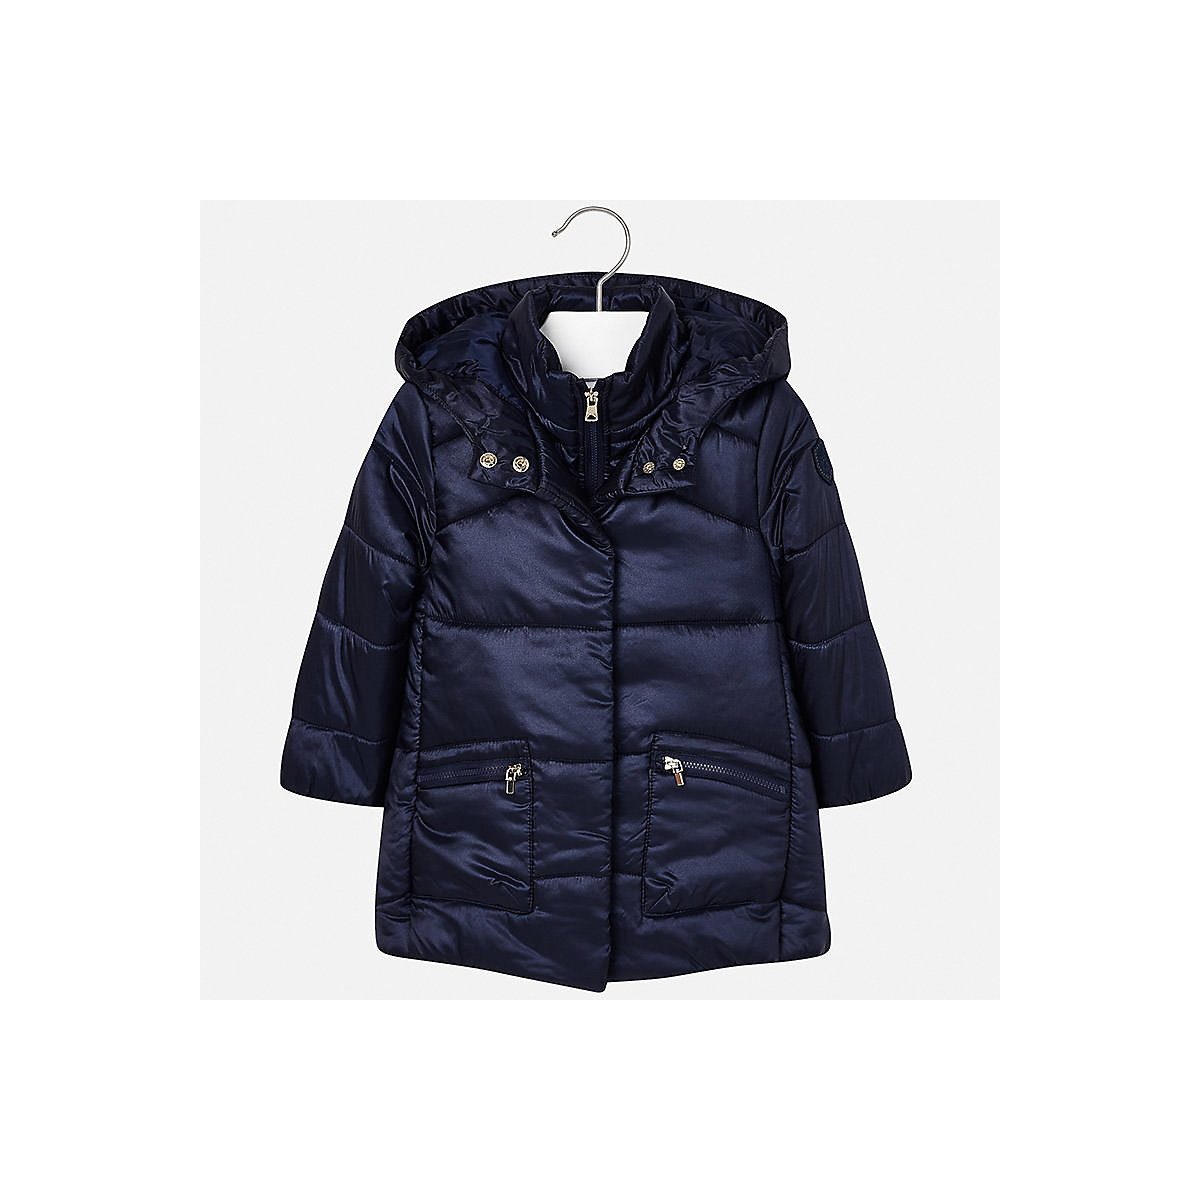 MAYORAL Jackets & Coats 8849877 jacket for girl boy coat baby clothes children clothing outwear boys girls newly 2017 children down clothing set kids baby girl boy suit dotted overalls warm snow sets toddler hoodied coat jackets pants